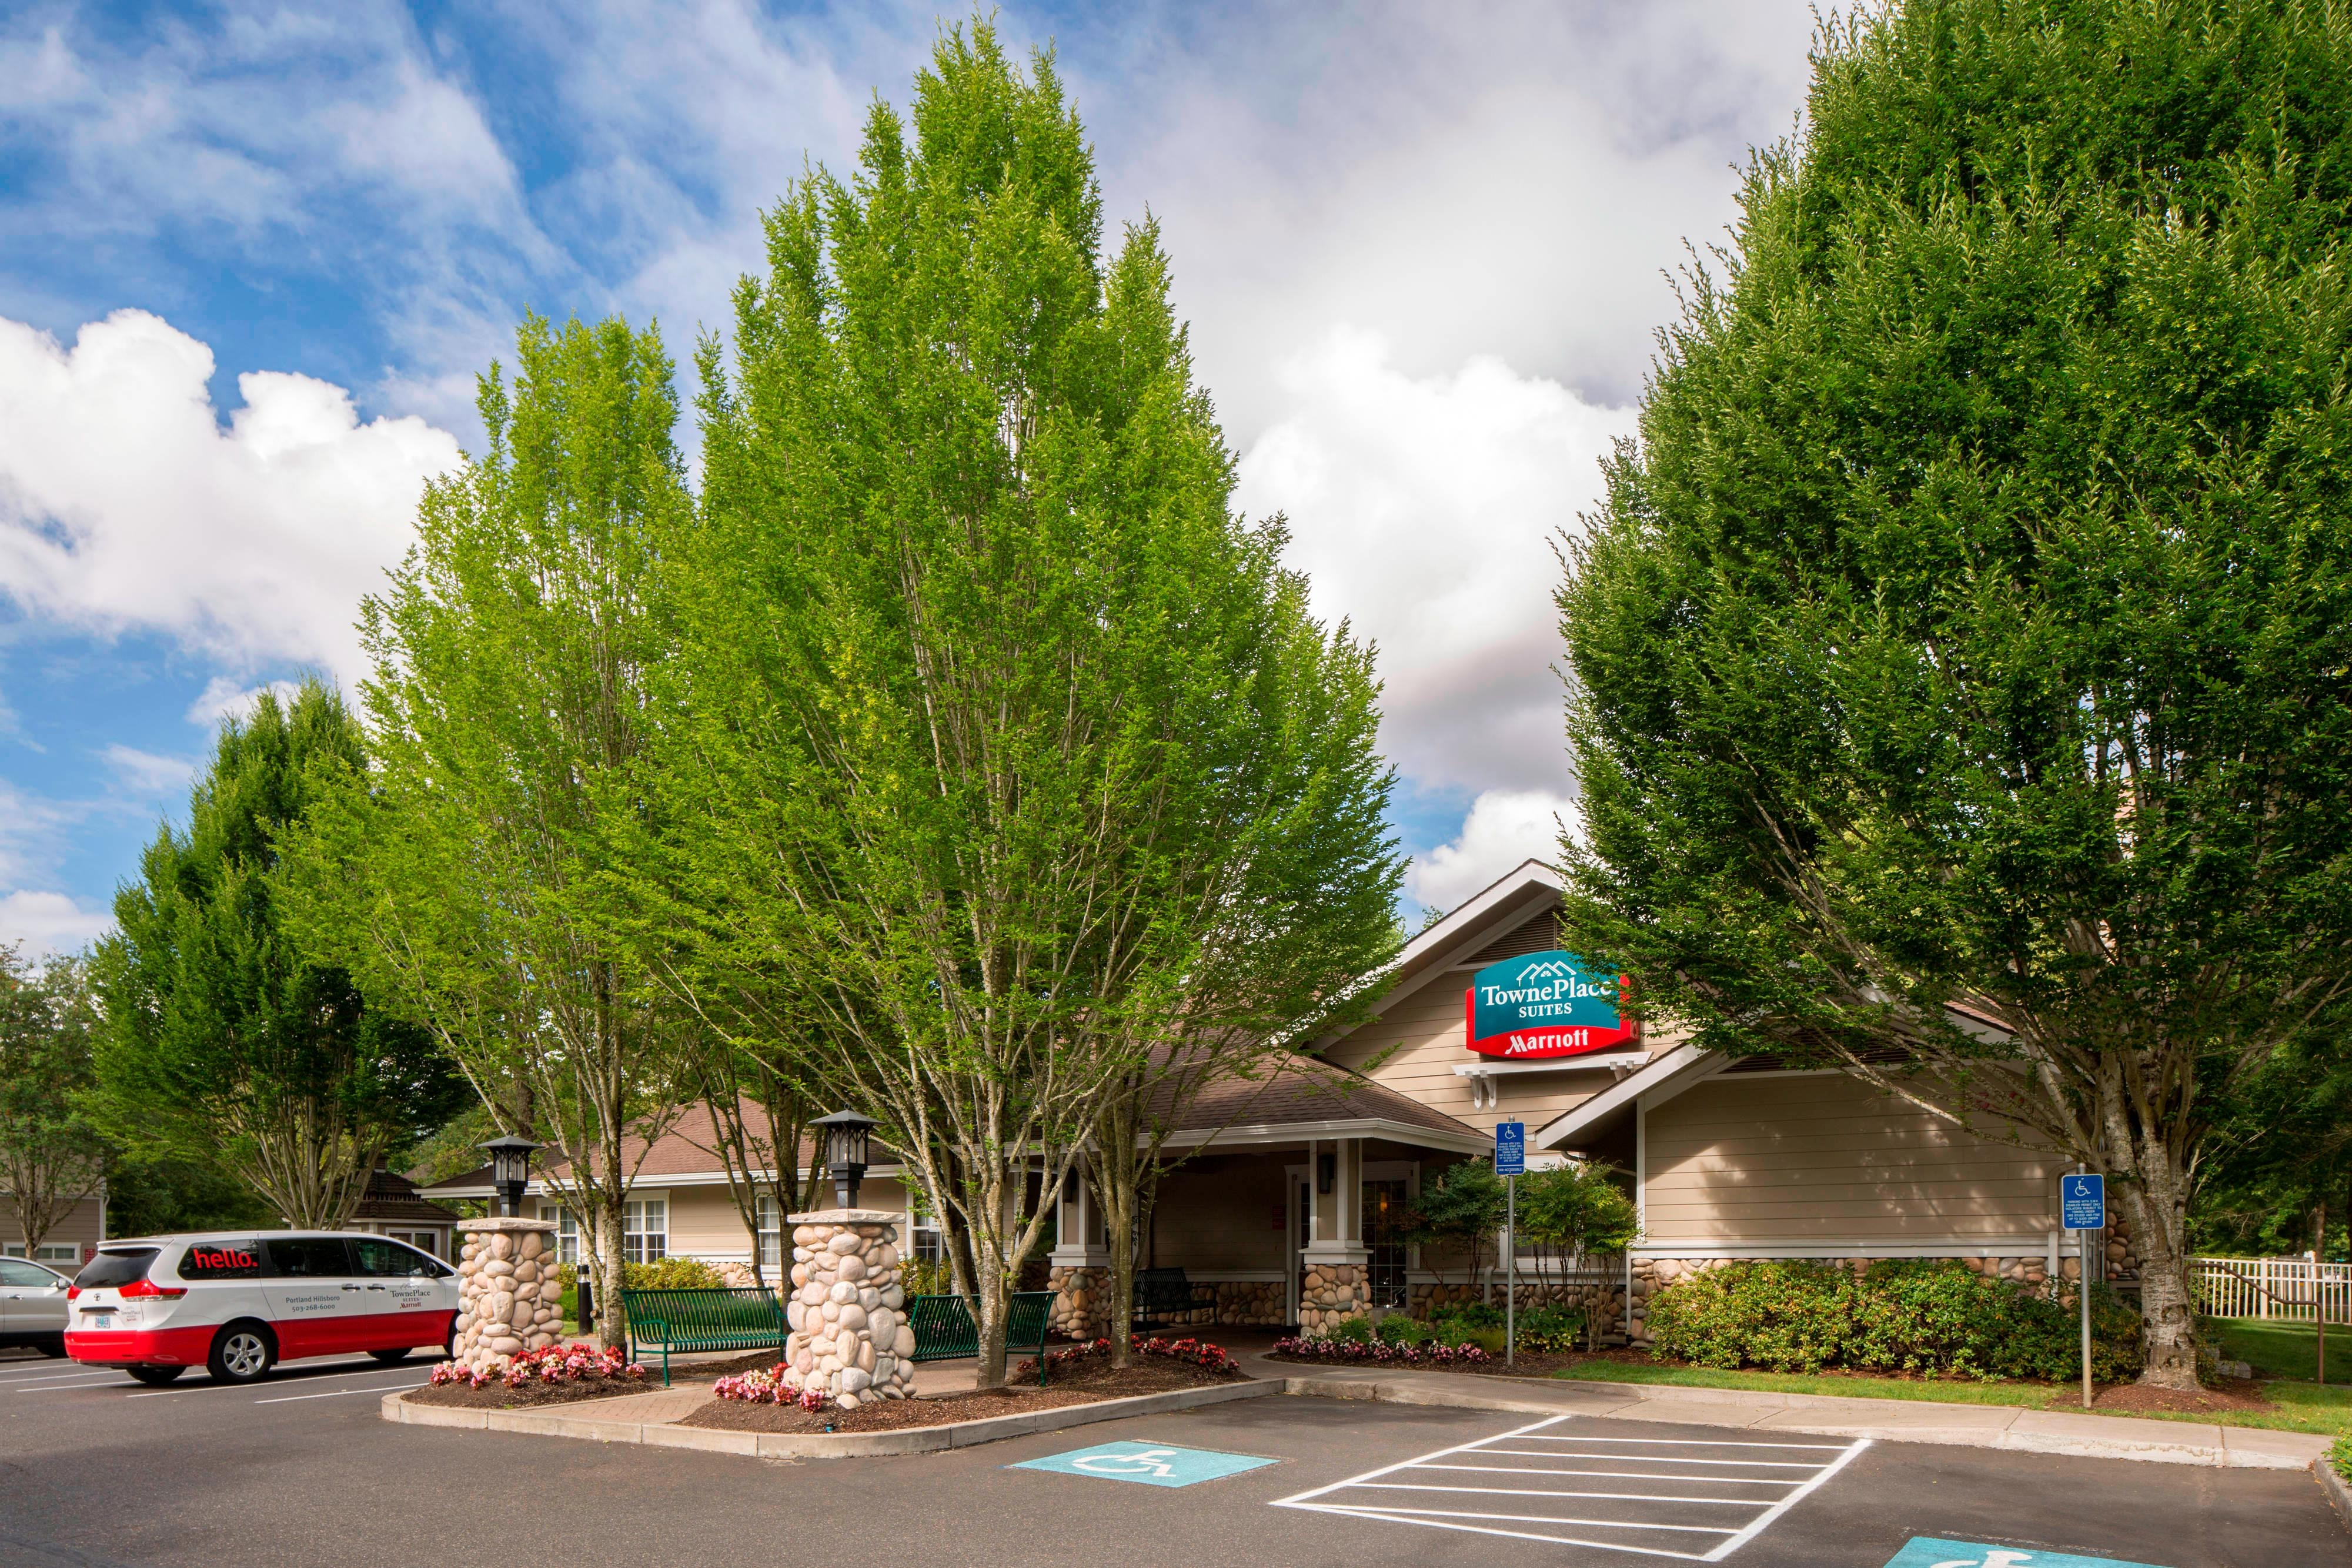 TownePlace Suites Portland Hillsboro Hotel